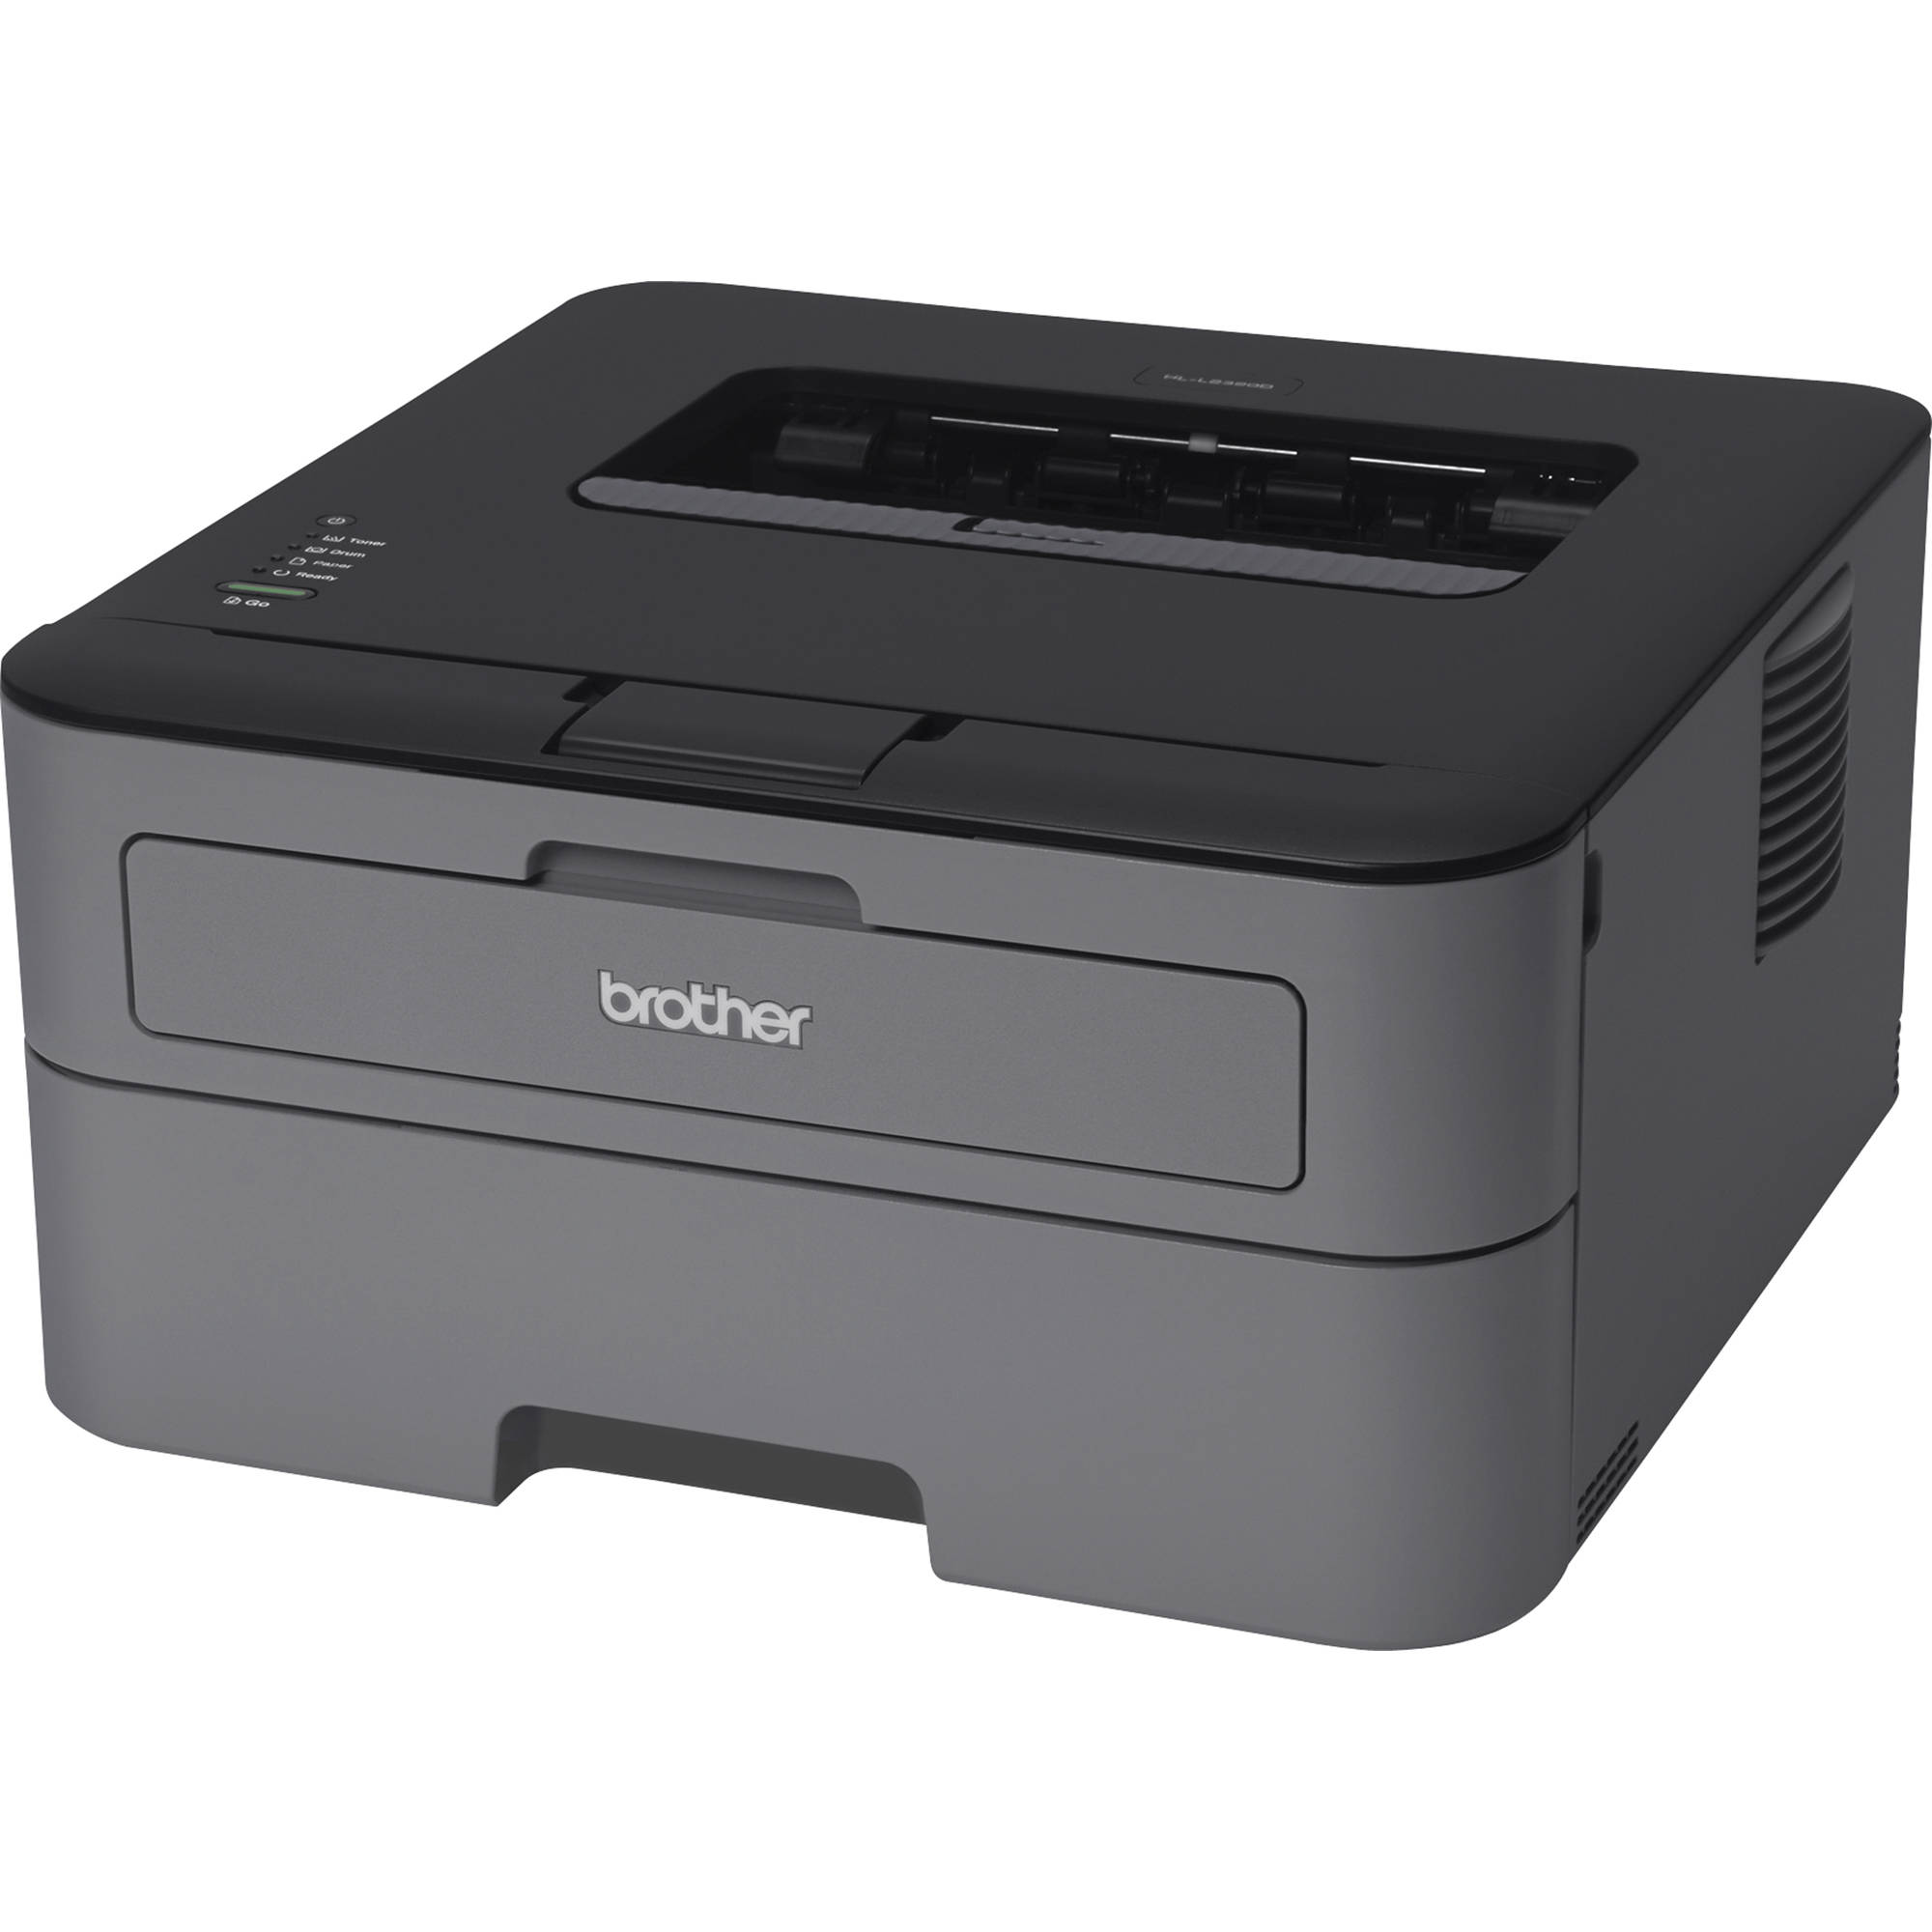 BROTHER PRINTER DRIVERS DOWNLOAD FREE